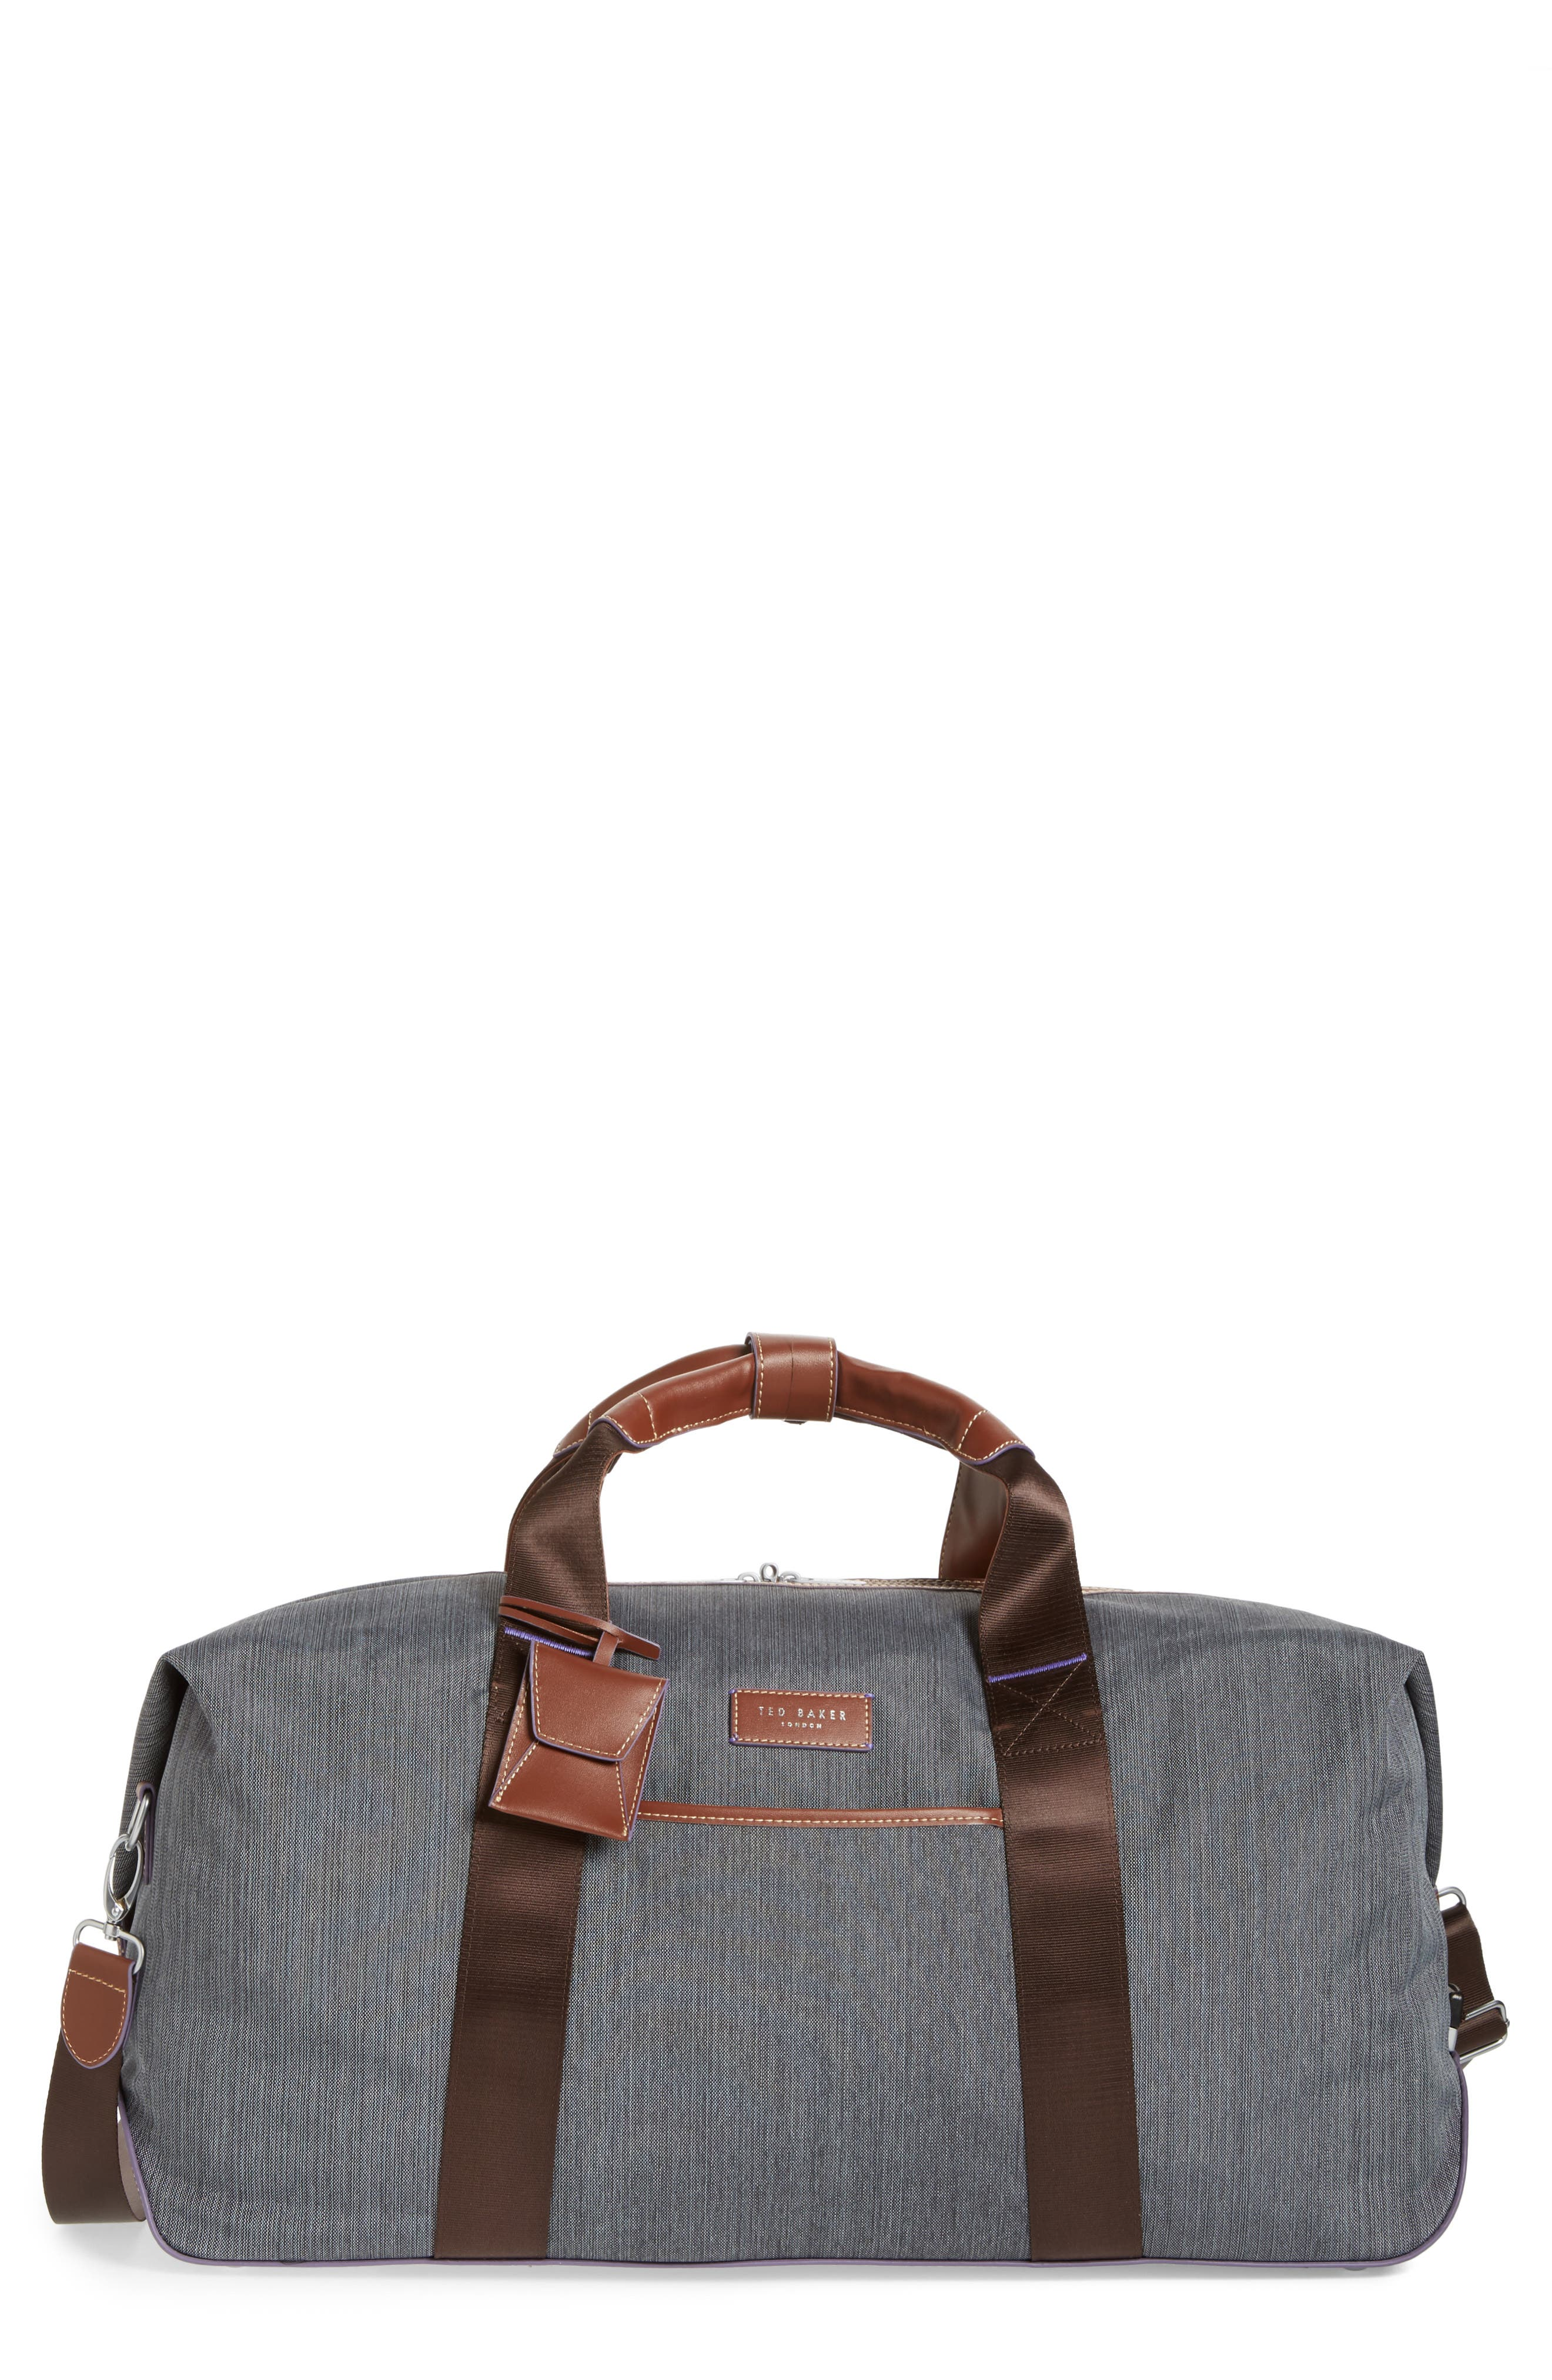 Ted Baker London Medium Falconwood Duffel Bag